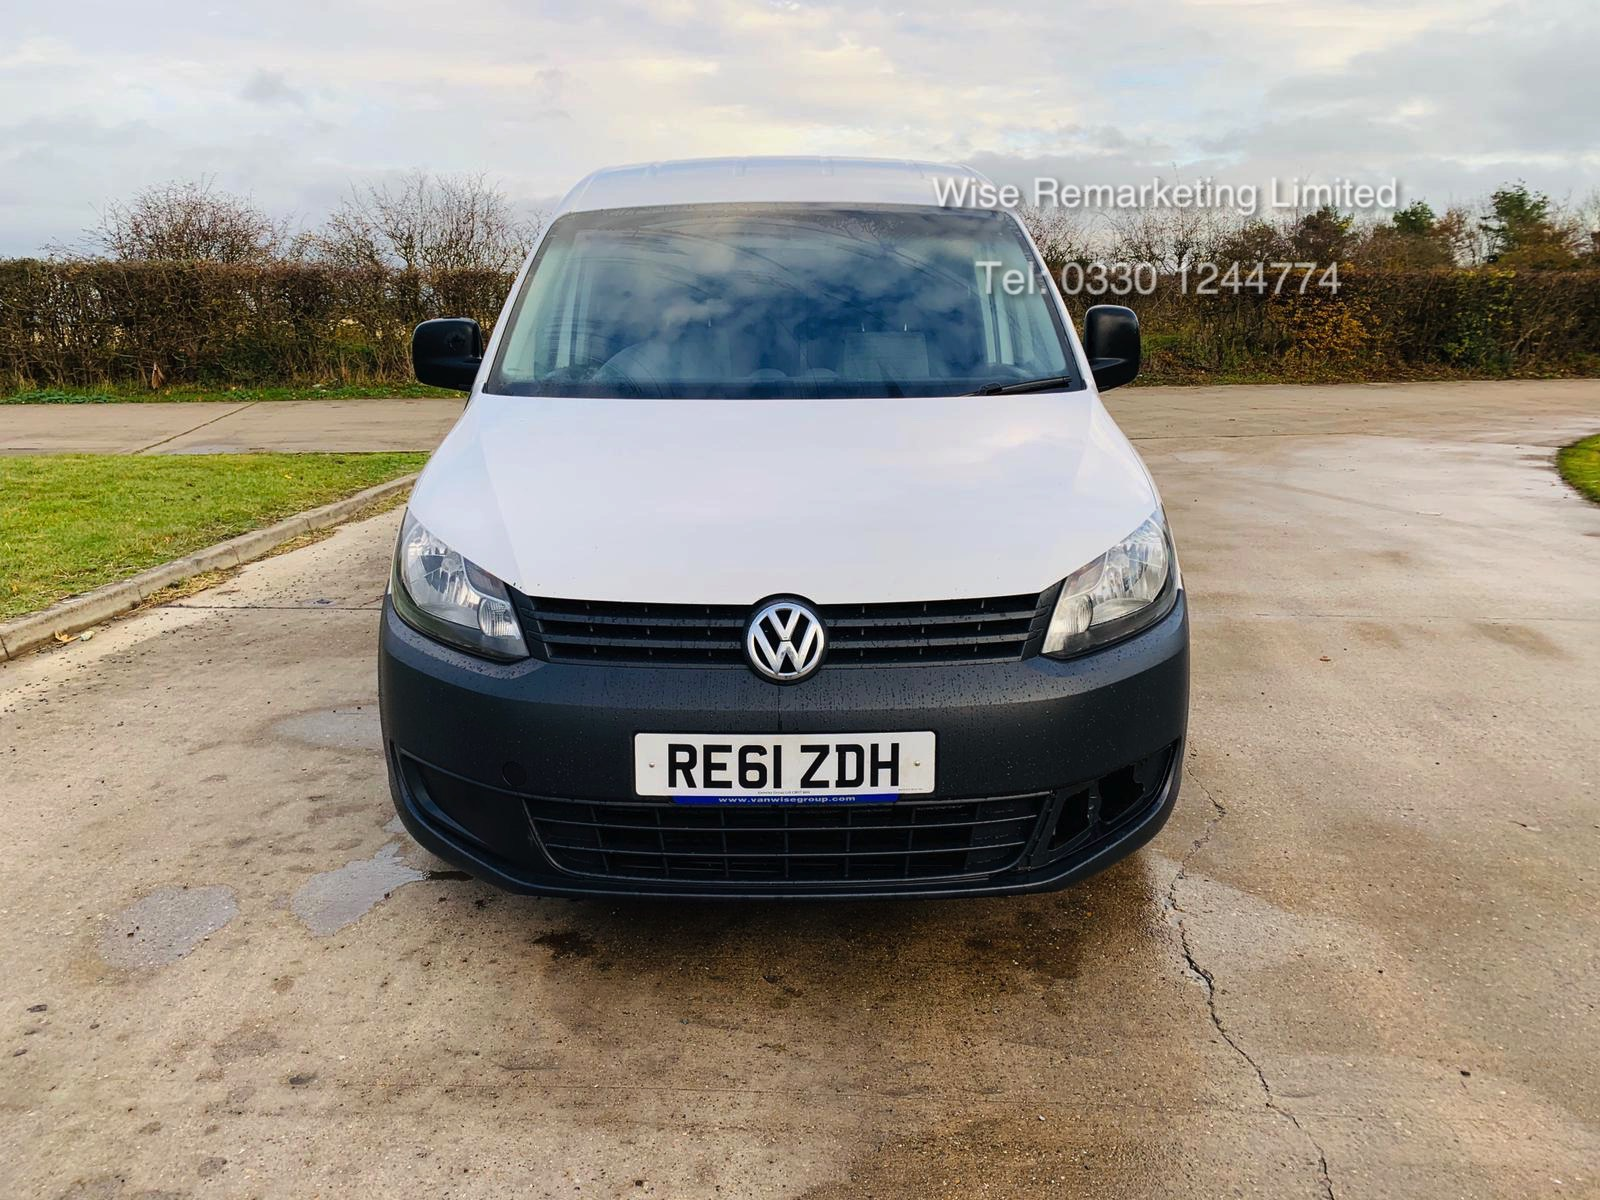 Volkswagen Caddy C20 1.6 TDI - 2012 Model - 1 Keeper From New - Side Loading Door - Ply Lined - Image 5 of 16